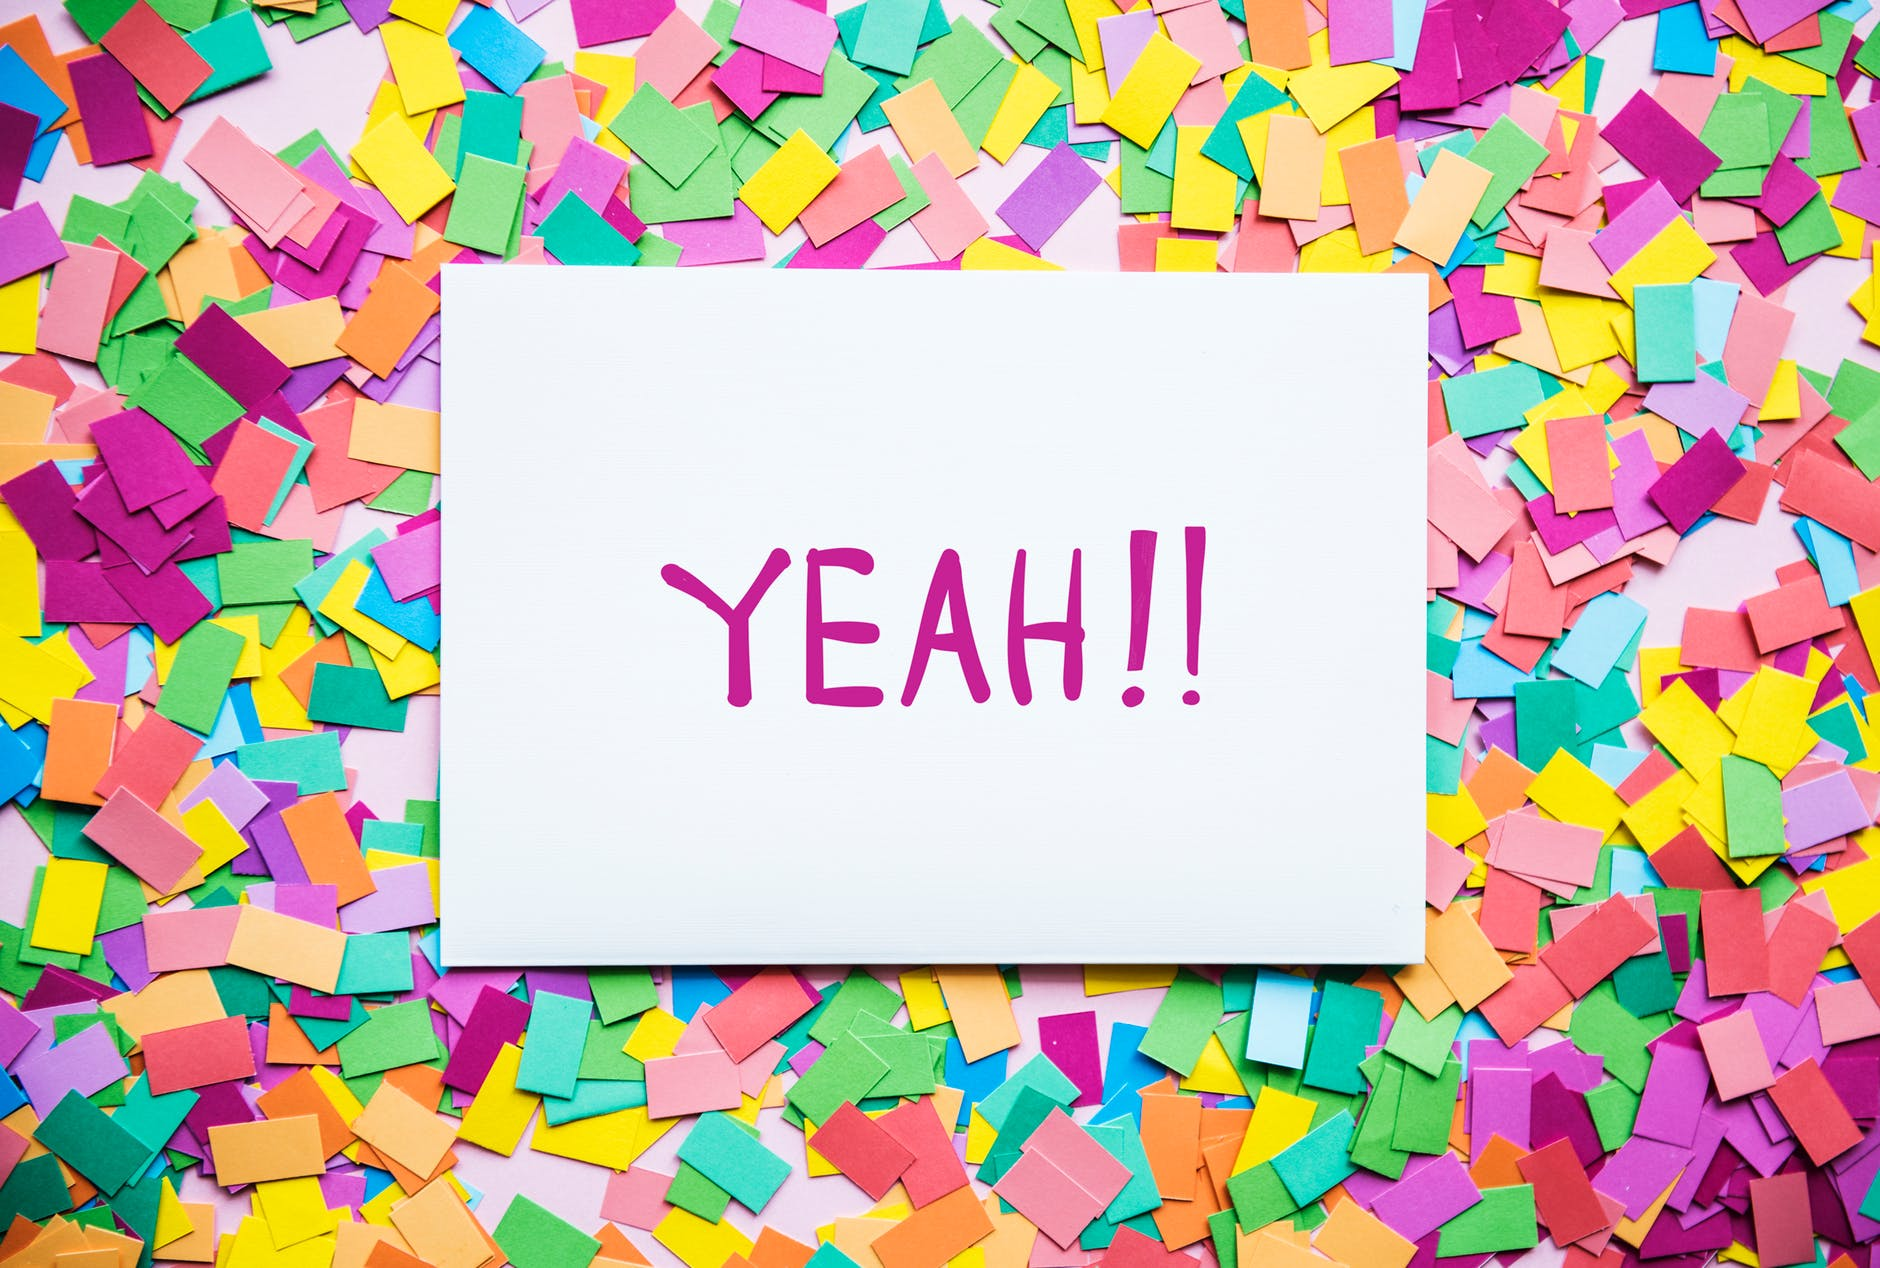 the word 'yeah!!' printed on a piece of paper, surrounded by colorful post-it notes.